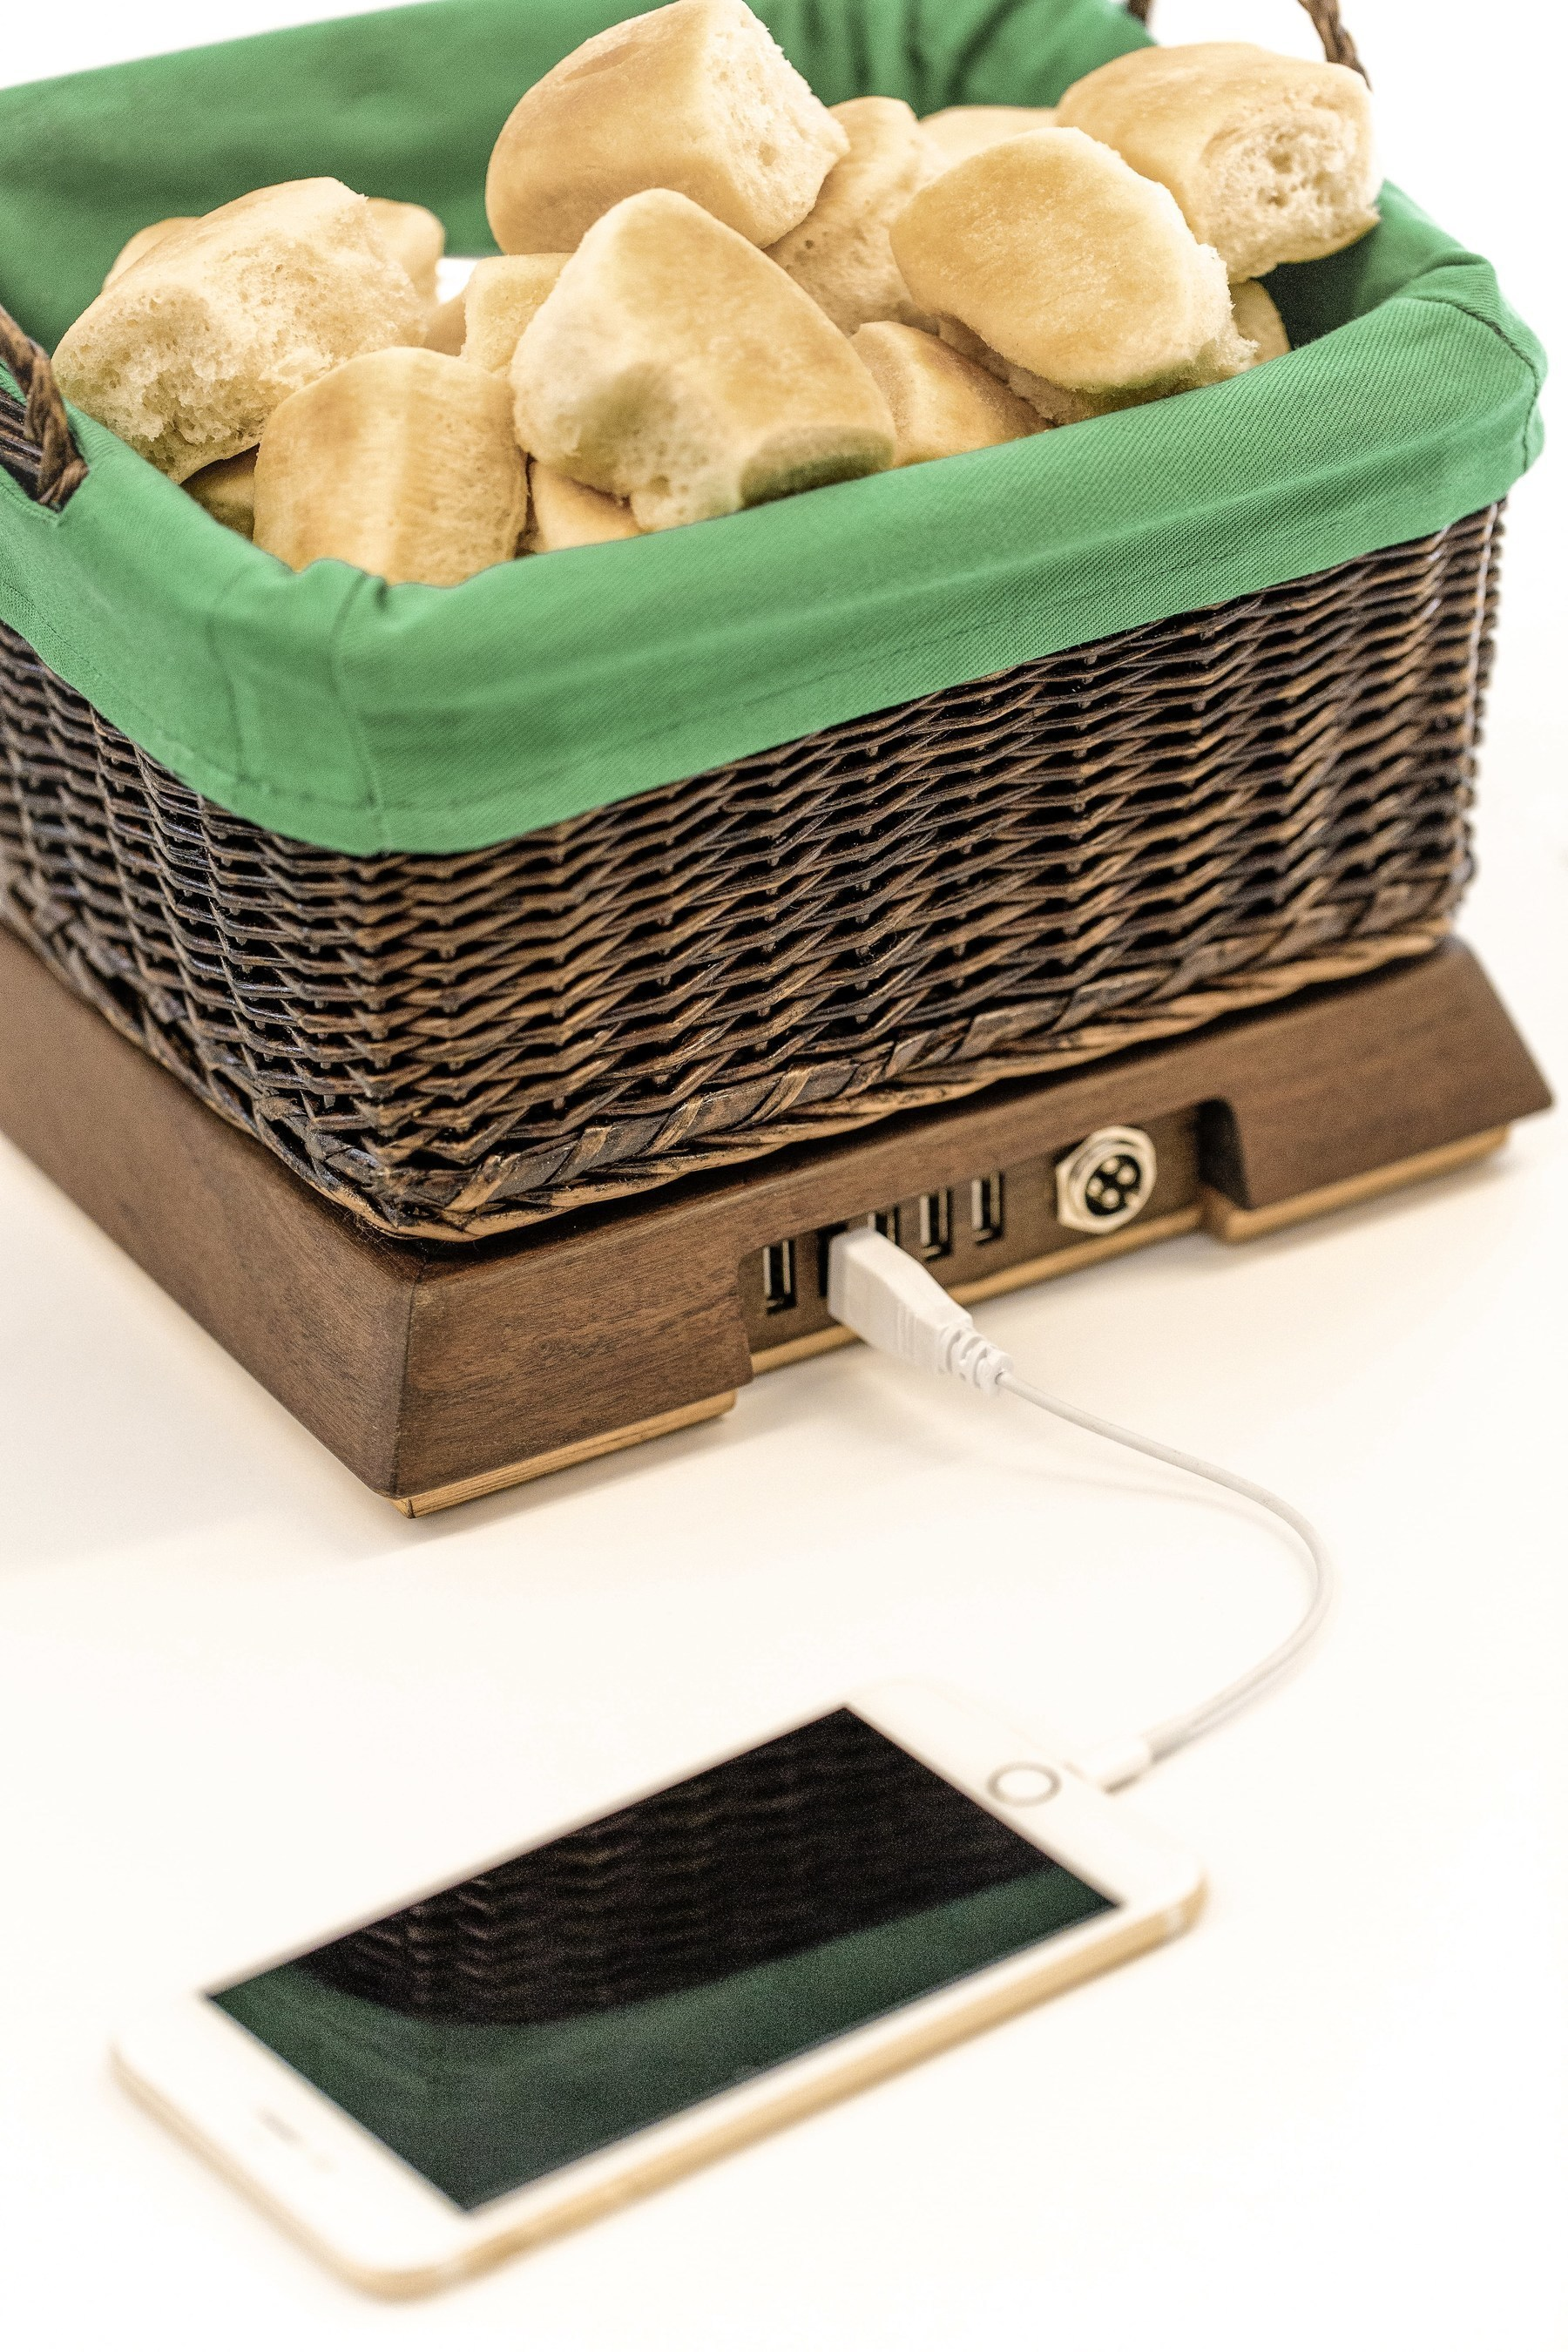 Sister Schubert's Basket of Warmth is no ordinary bread basket. As the centerpiece to a holiday table, or any dinner table, the Basket of Warmth uses the very electronic devices that create distractions at dinnertime to keep freshly baked Sister Schubert's dinner rolls warm. Guests simply plug their devices into the basket during dinner. The devices stay safely tucked away; recharging while the dinner rolls stay warm.